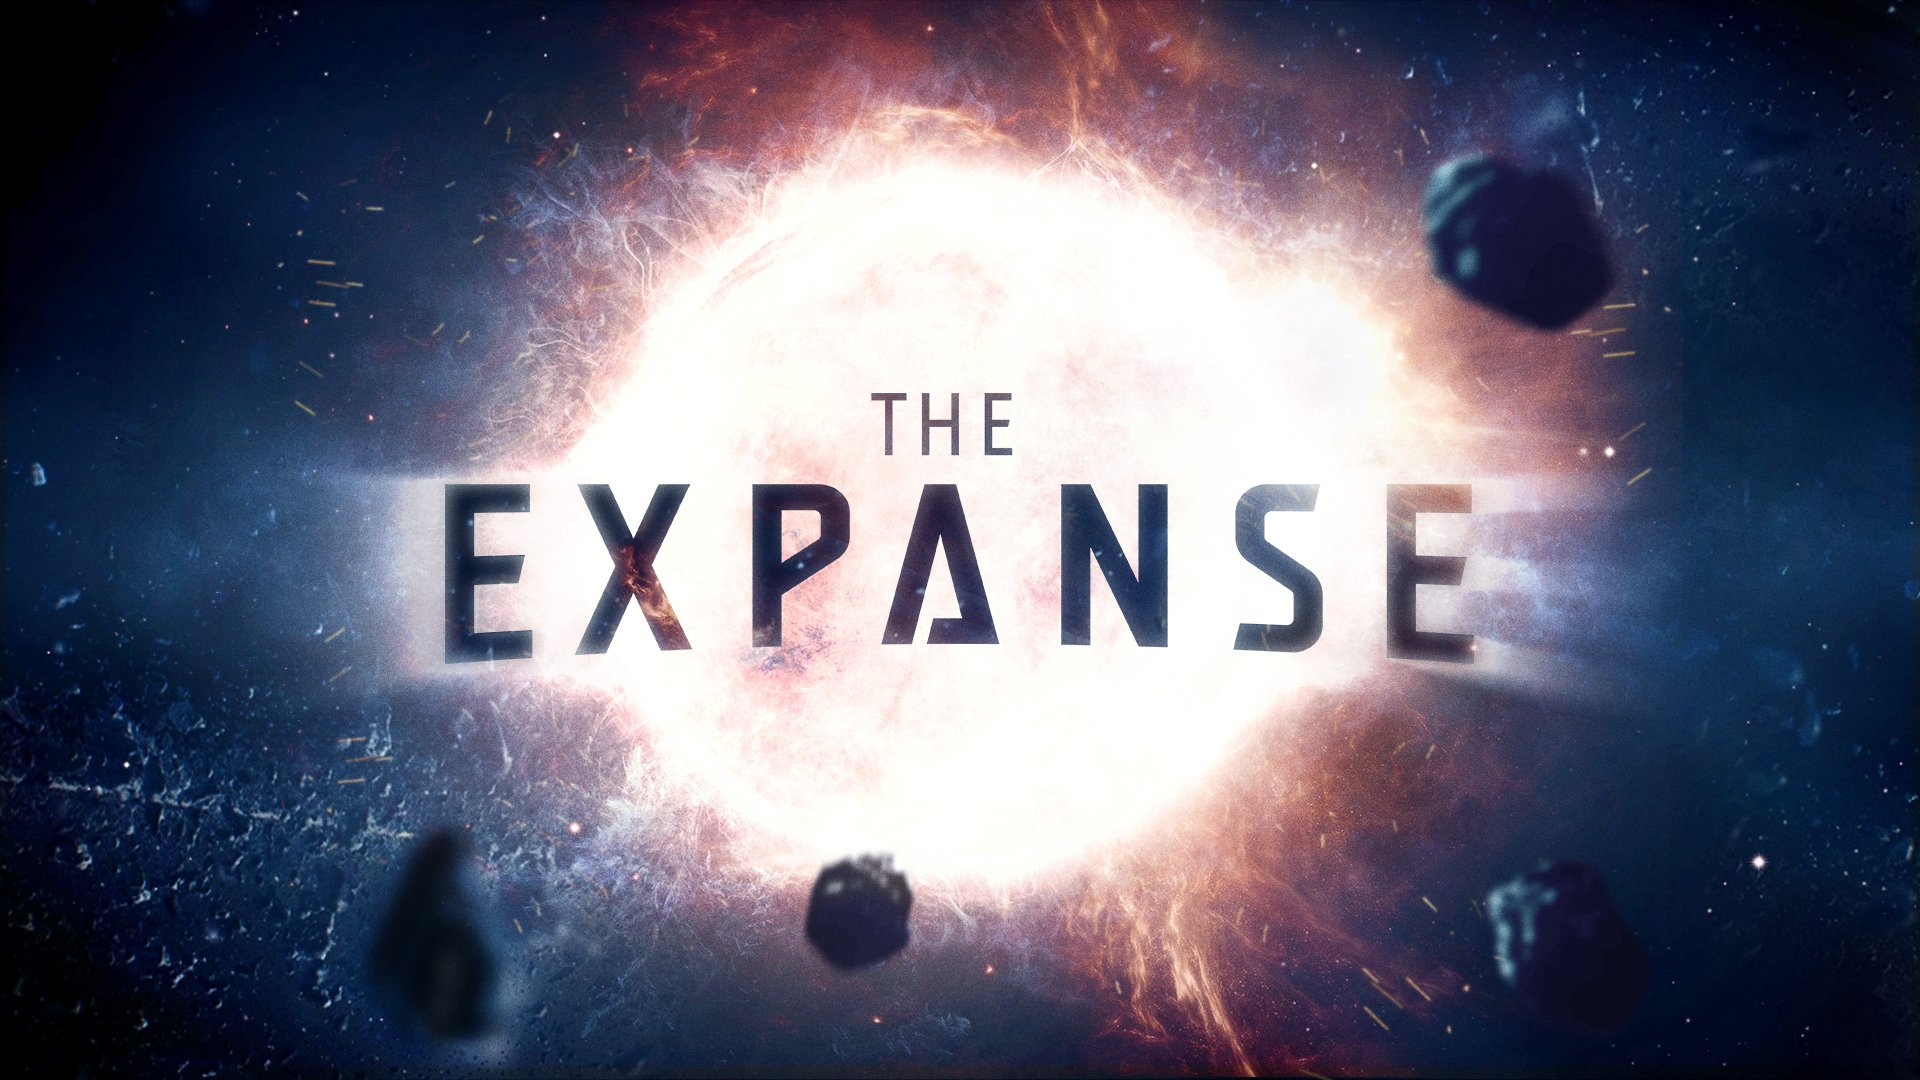 Check out The Expanse!